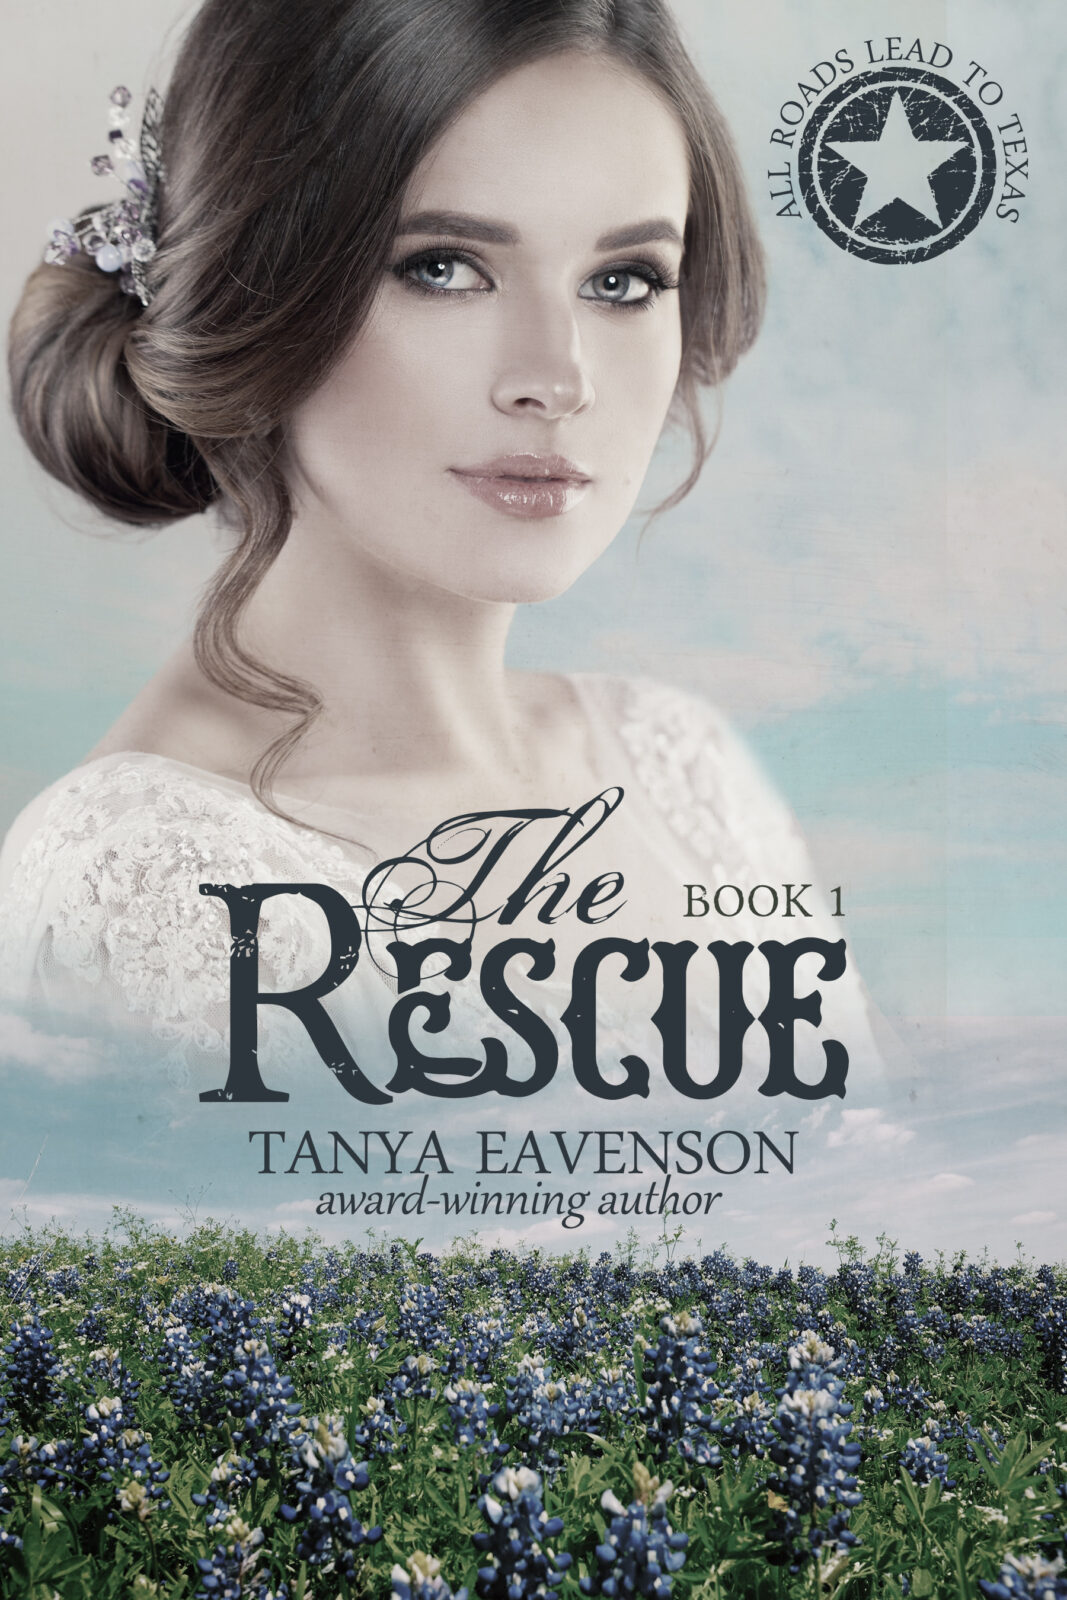 Celebrating release day, welcome Tanya Eavenson!